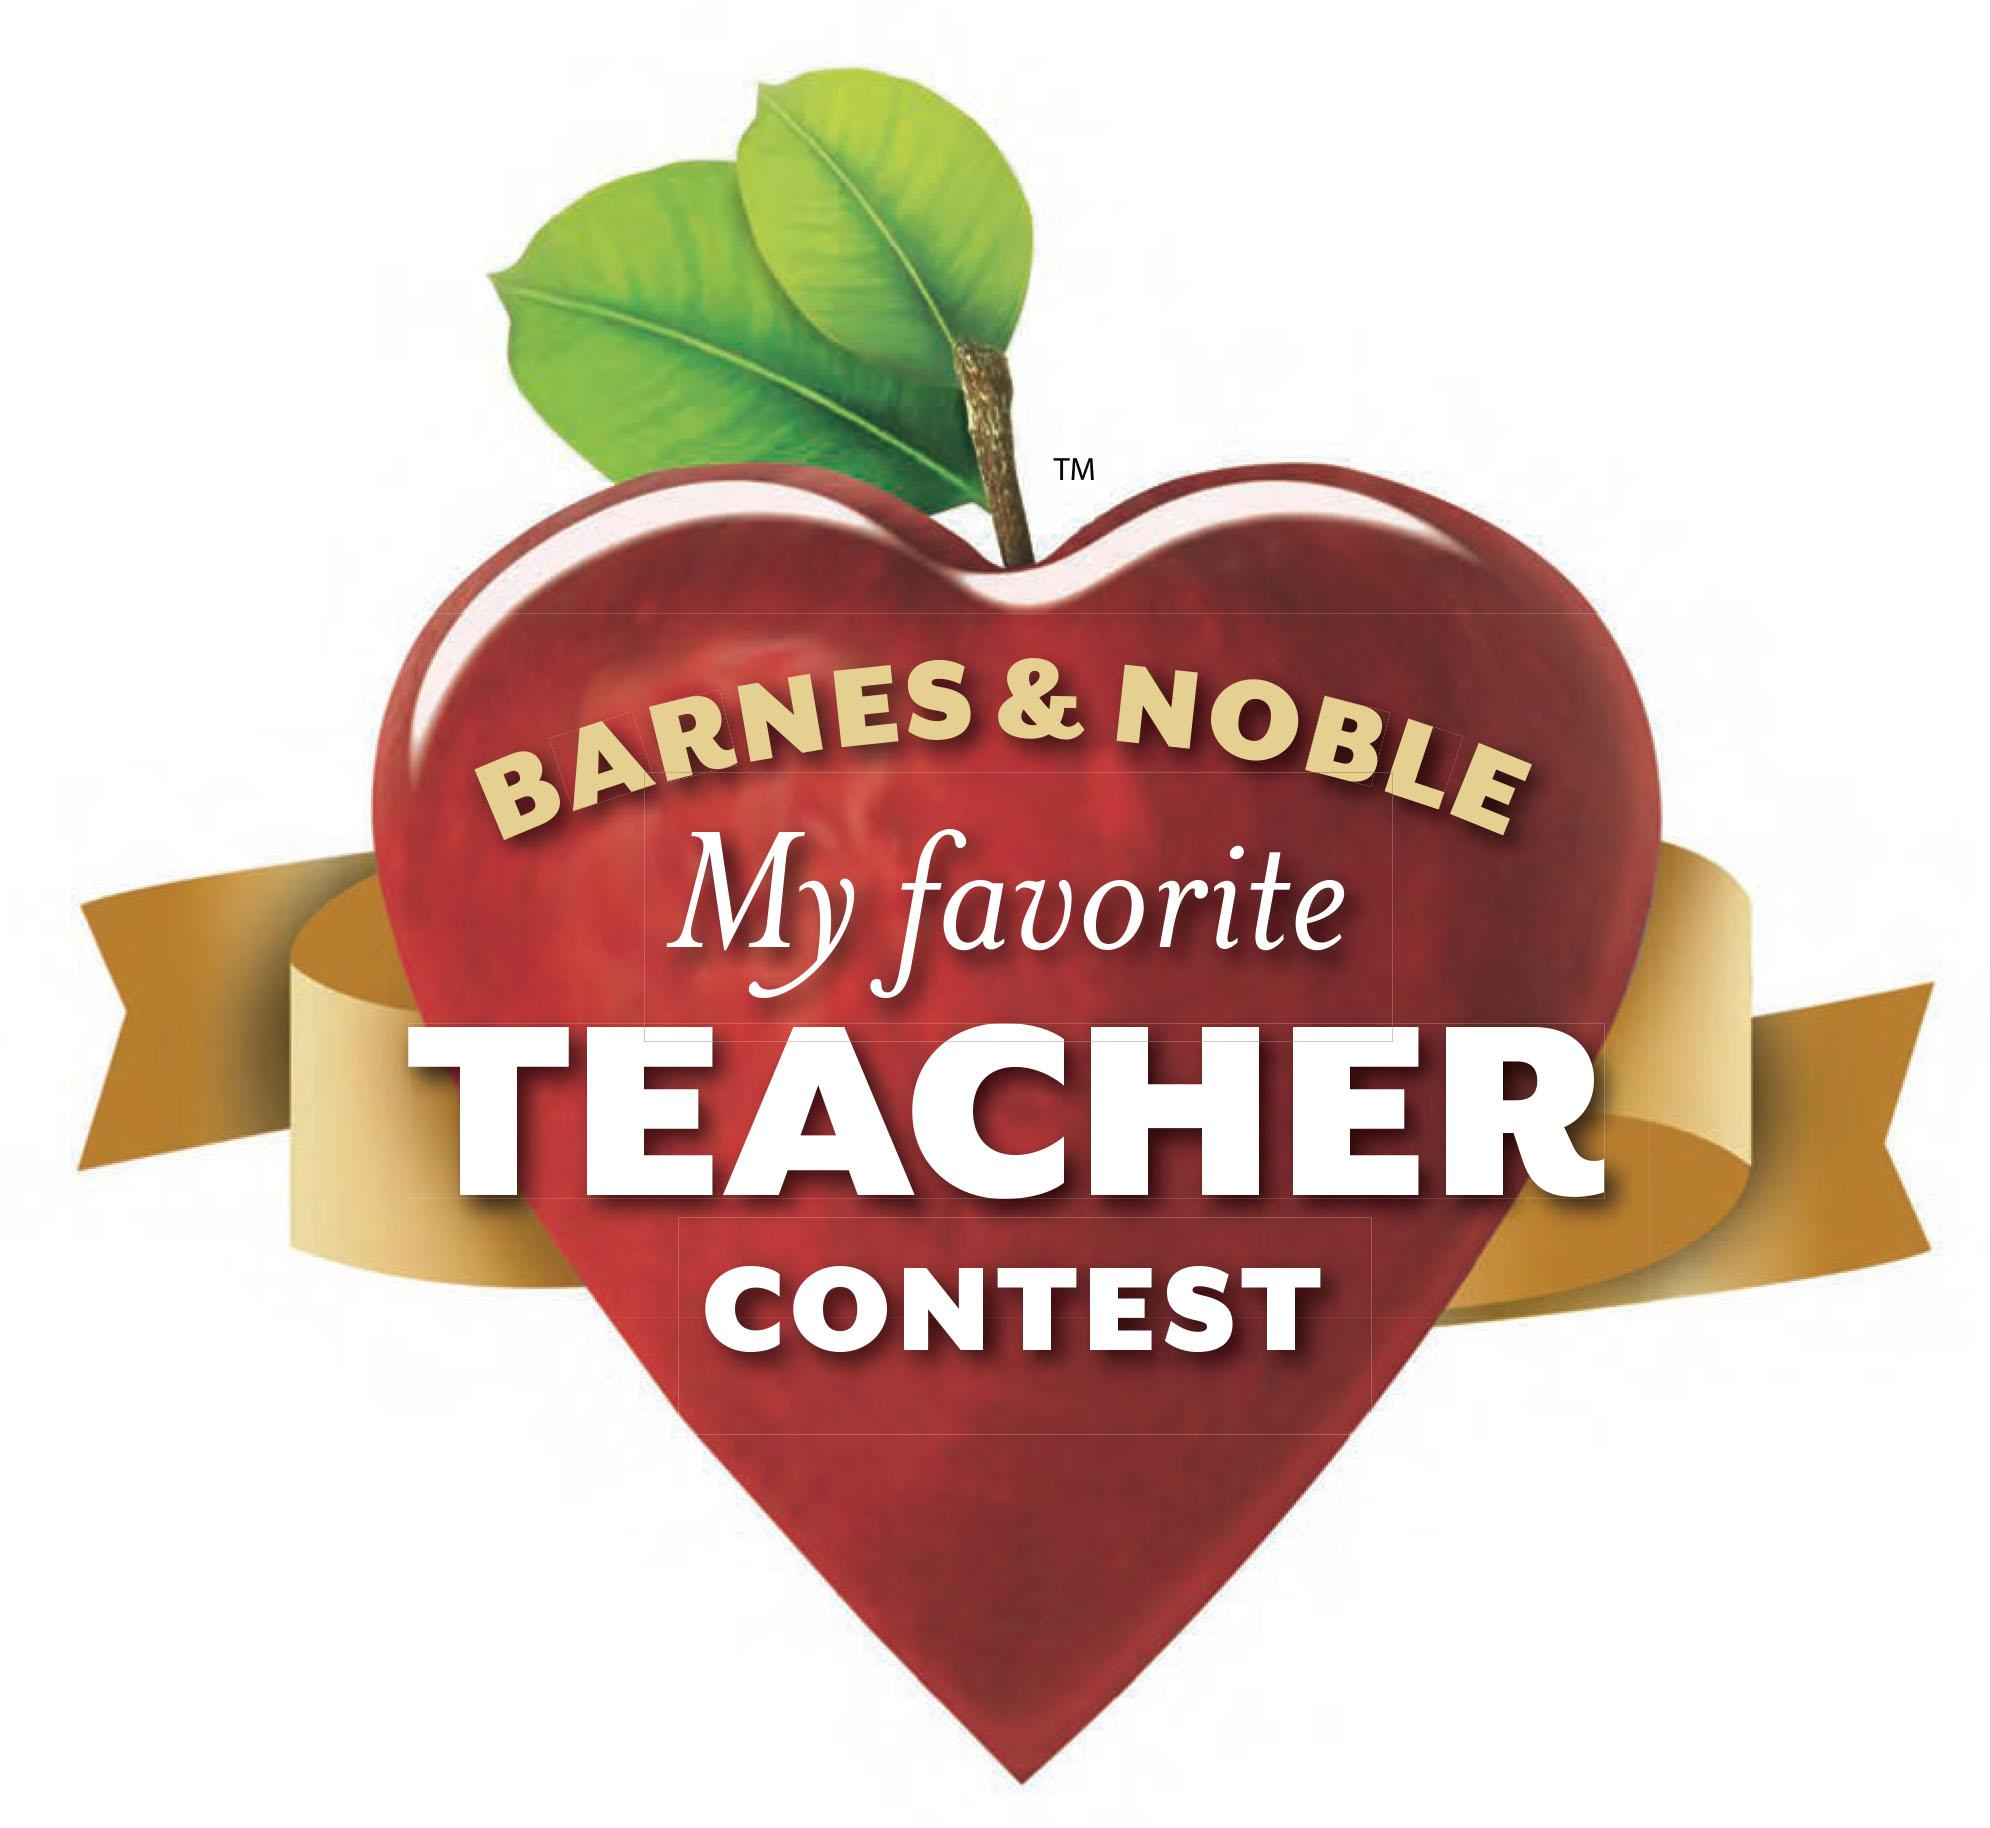 District 88 students invited to participate in Barnes & Noble 'My Favorite Teacher Contest'